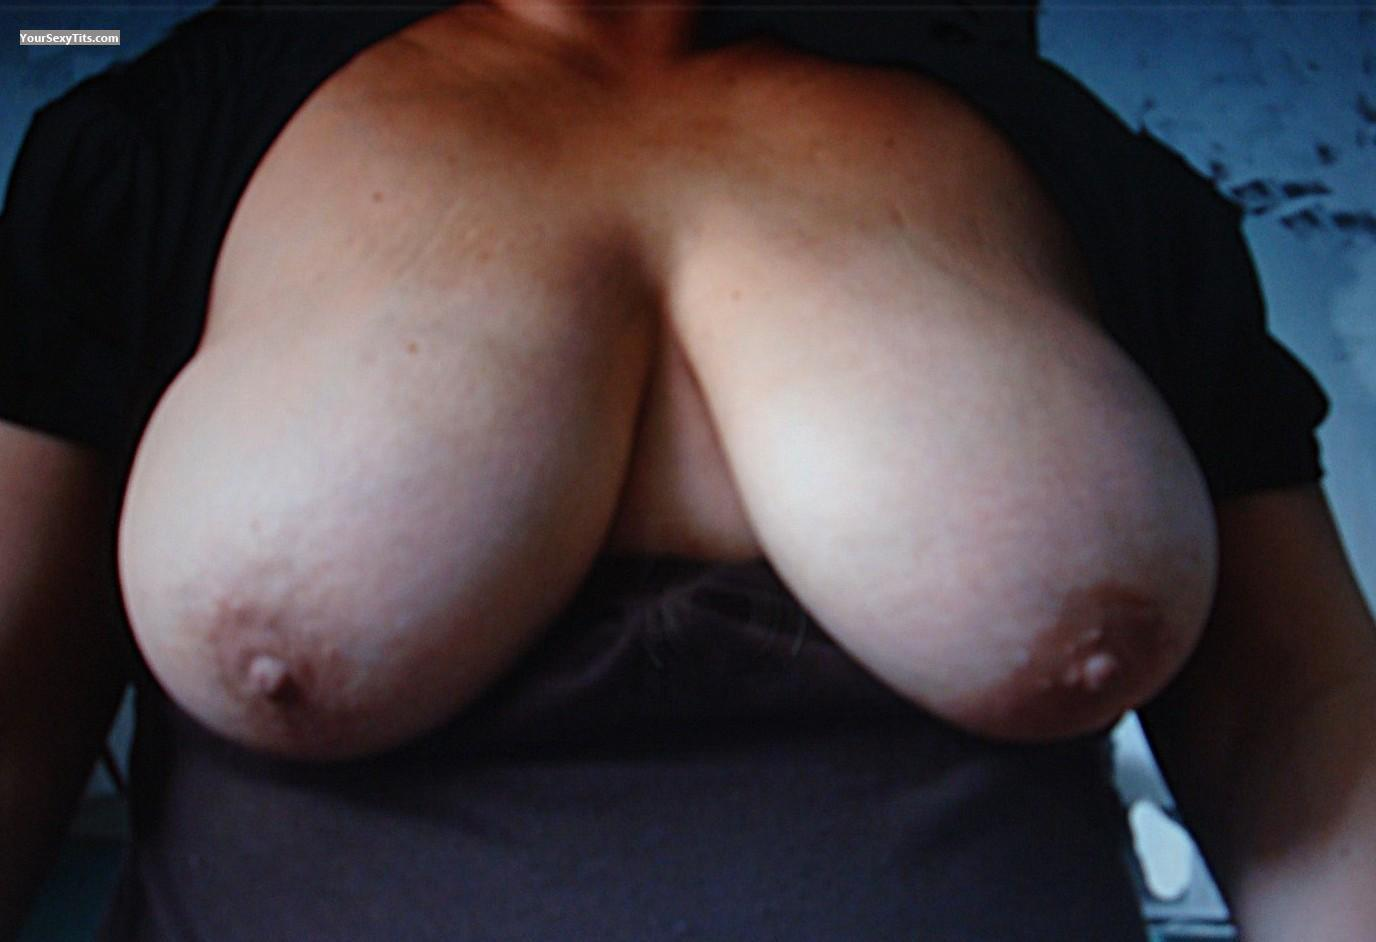 Tit Flash: Big Tits - Toni from United States